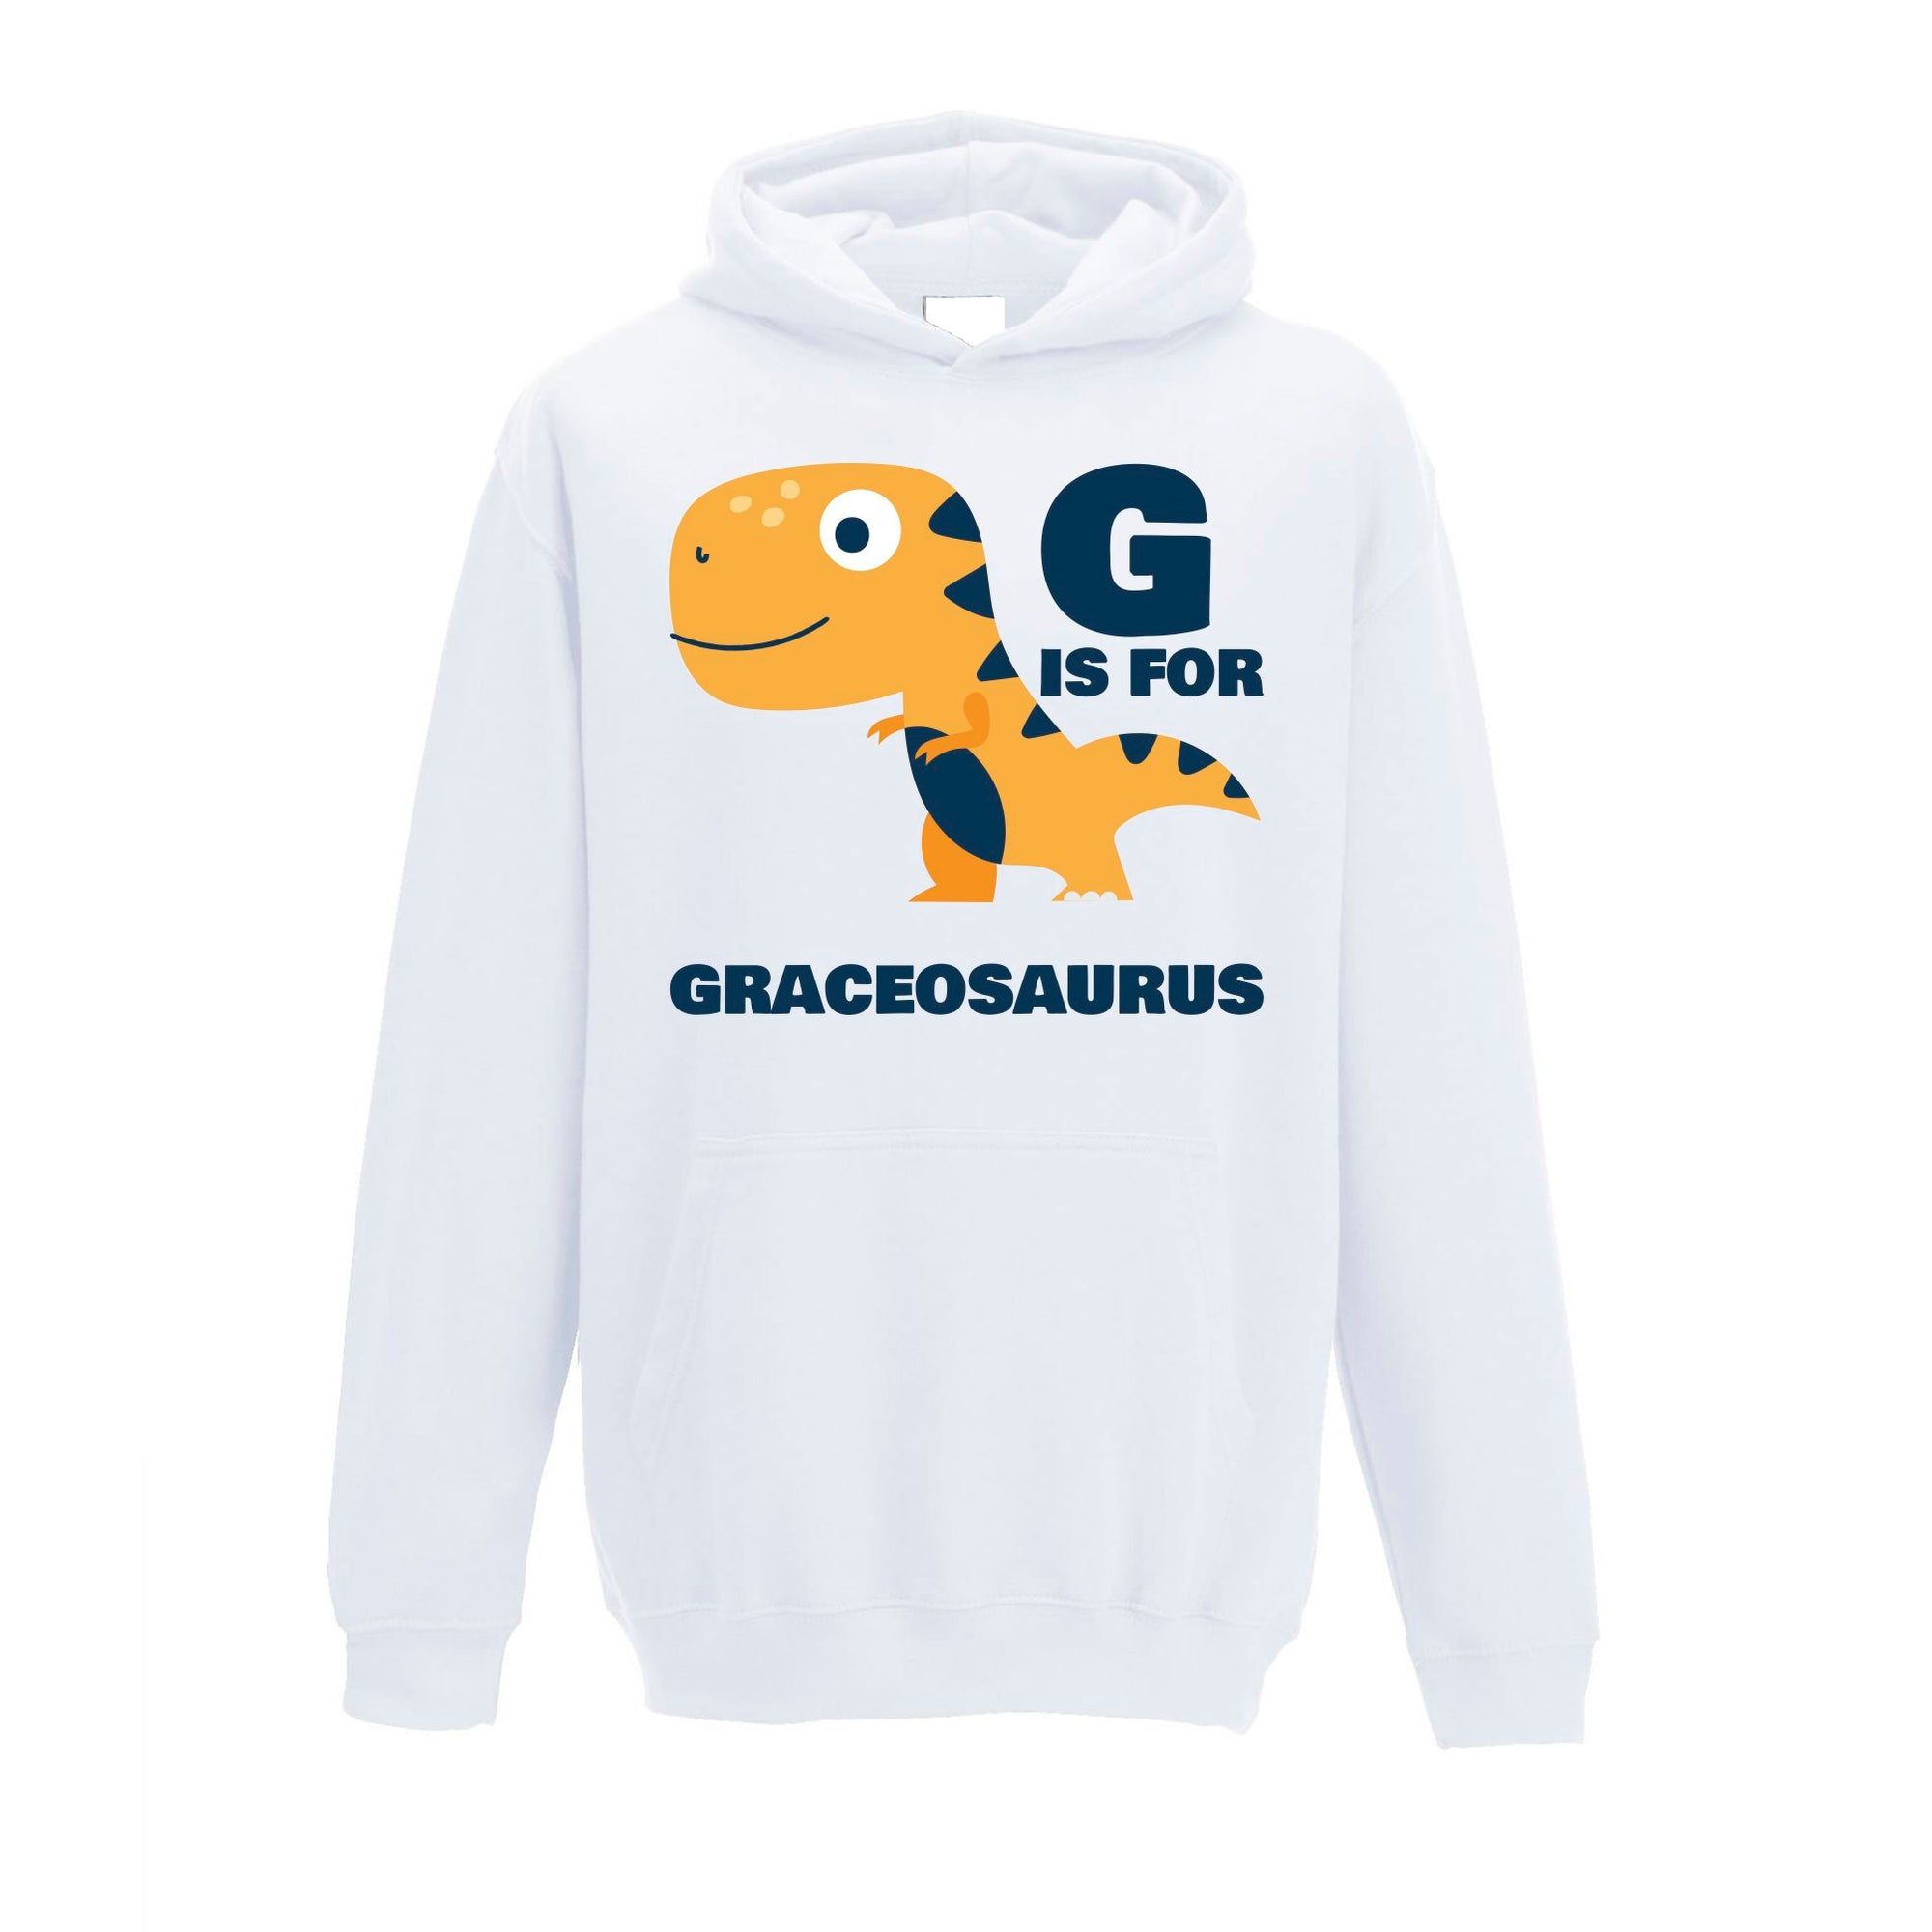 Dinosaur Kids Hoodie Grace Saurus Birth Name Childs